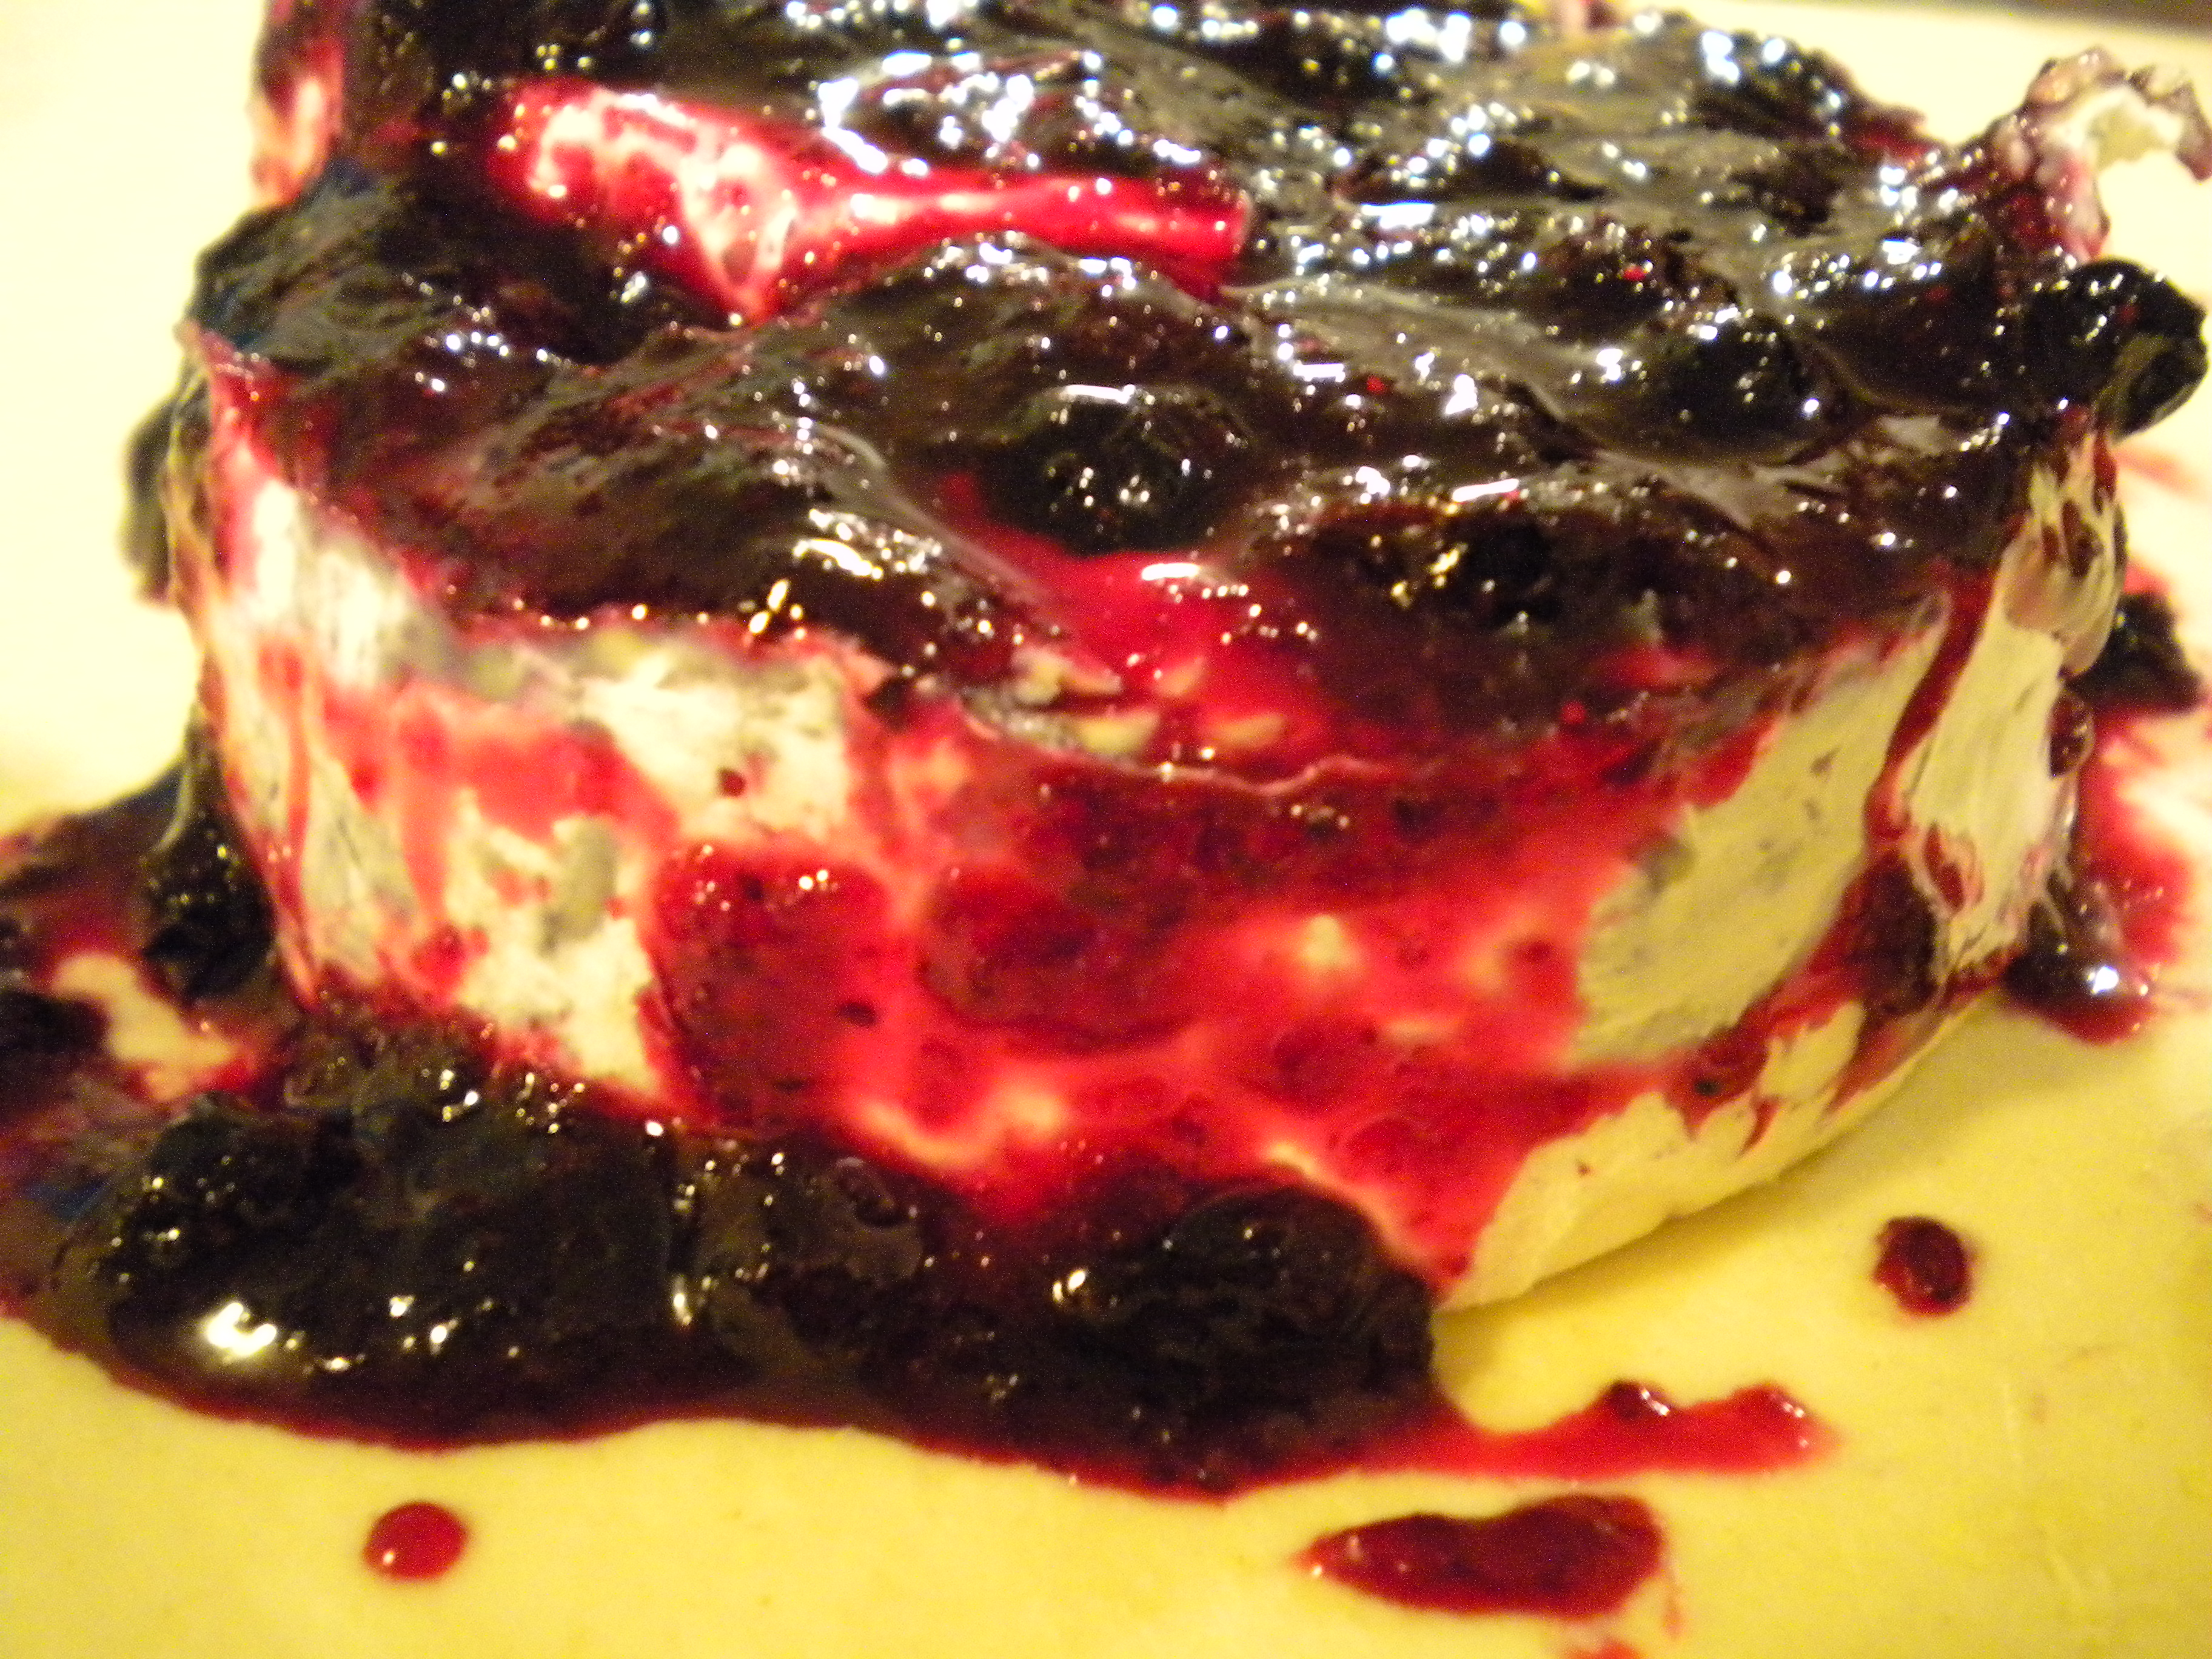 Baked Brie With Jam